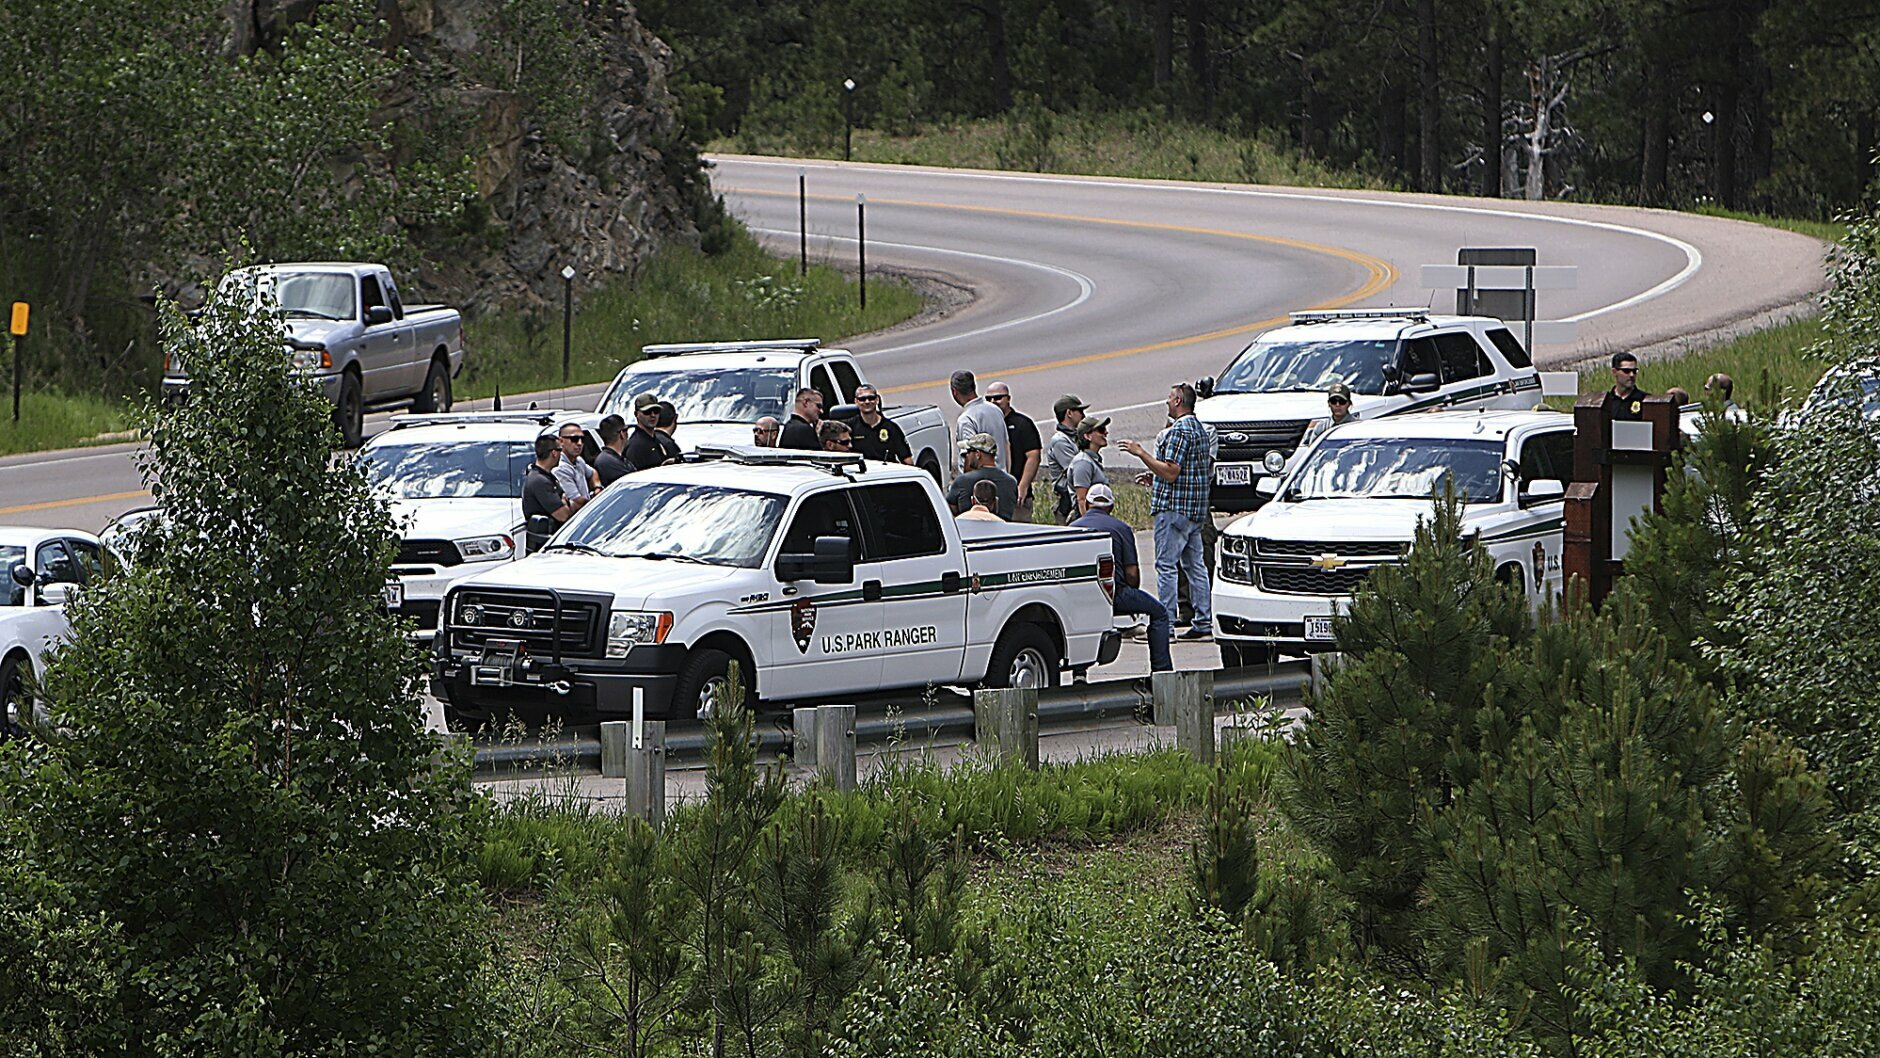 Law enforcement officers meet Thursday, July 2, 2020, at the site near Horse Thief Lake where traffic trying to enter the Mount Rushmore National Memorial, S.D., will be stopped and screened. Ticket holders to the fireworks display Friday at Mount Rushmore will be allowed to continue along Highway 244. Those without tickets will be told to turn around. President Donald Trump is scheduled to visit Mount Rushmore on Friday. (Jeff Easton/Rapid City Journal via AP)